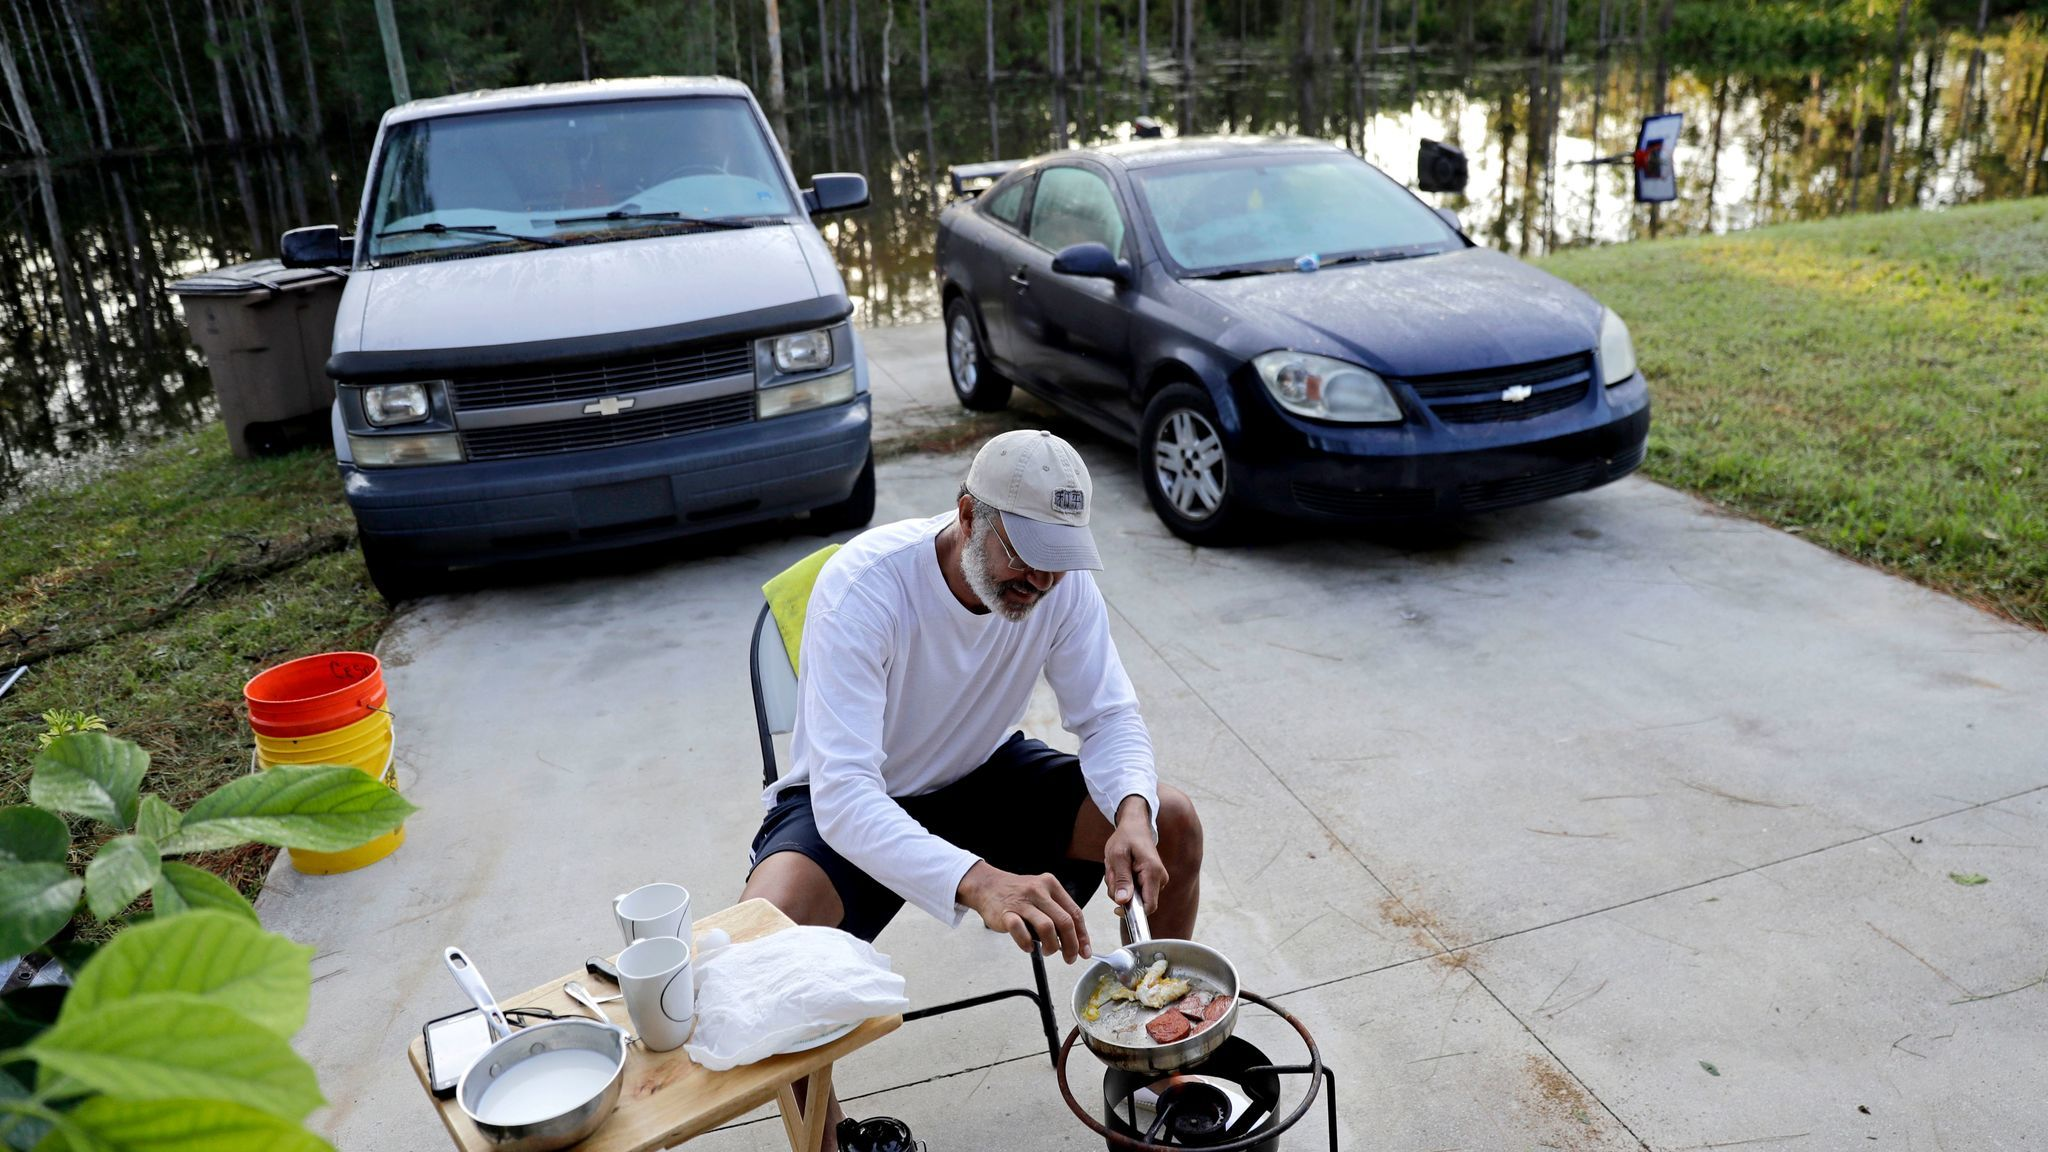 With his Fort Myers, Fla., neighborhood flooded, Cesar De La Cruz makes breakfast Sept. 12 on a propane stove in his driveway.